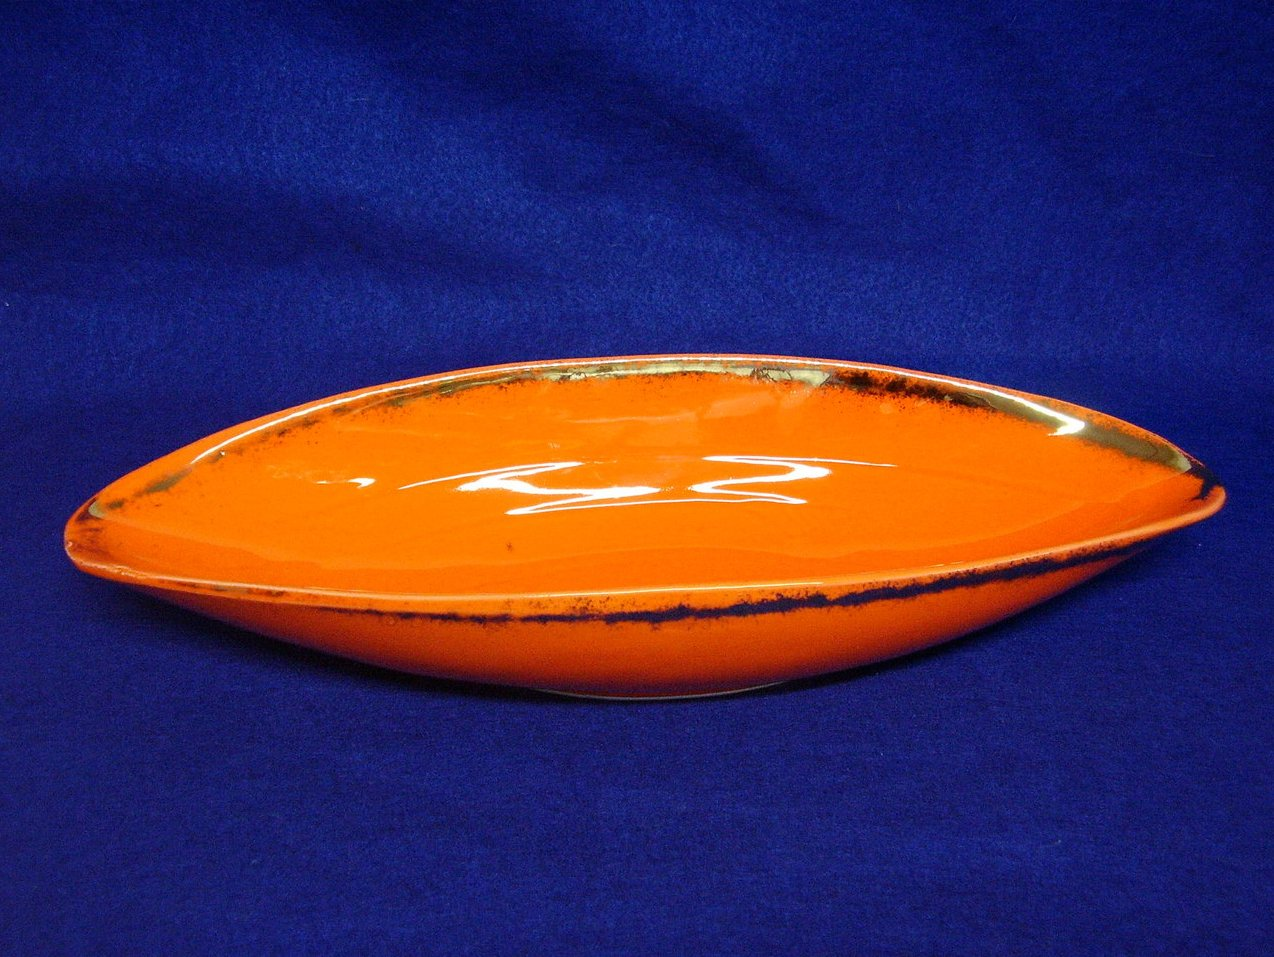 '.California USA Orange dish.'